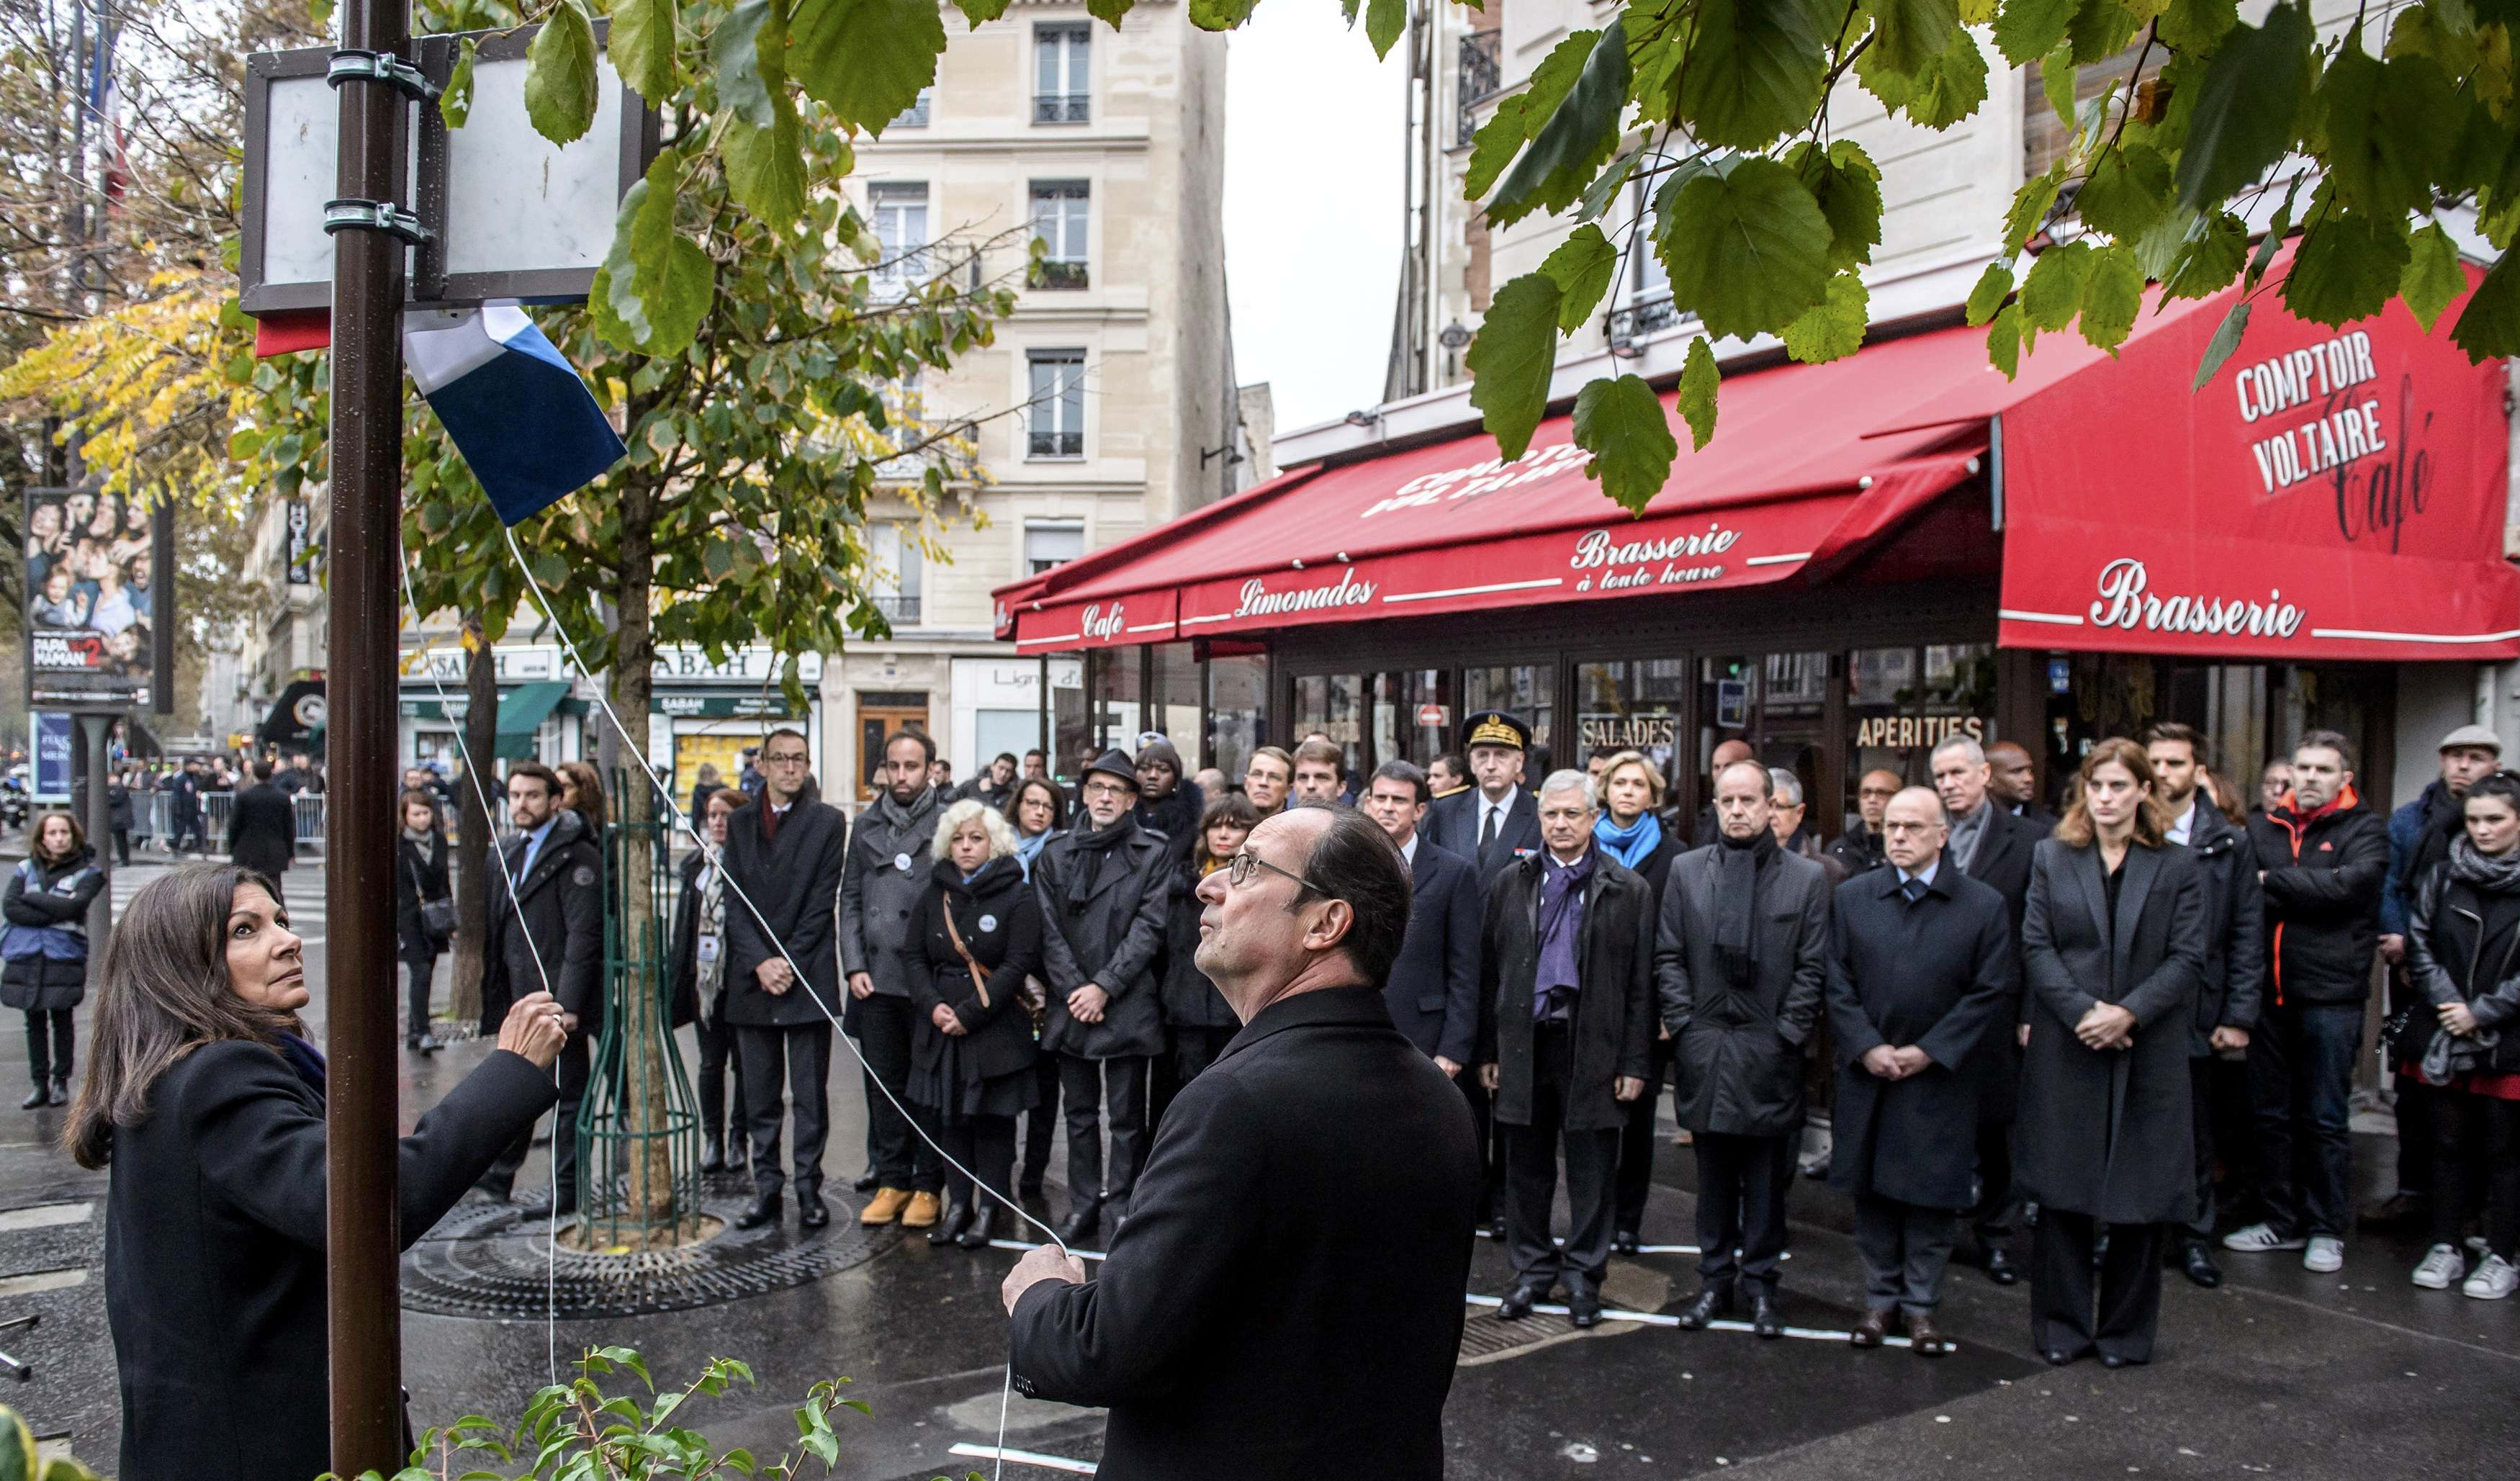 French President Francois Hollande and Paris Mayor Anne Hidalgo unveil a commemorative plaque in front of the Comptoir Voltaire cafe and restaurant